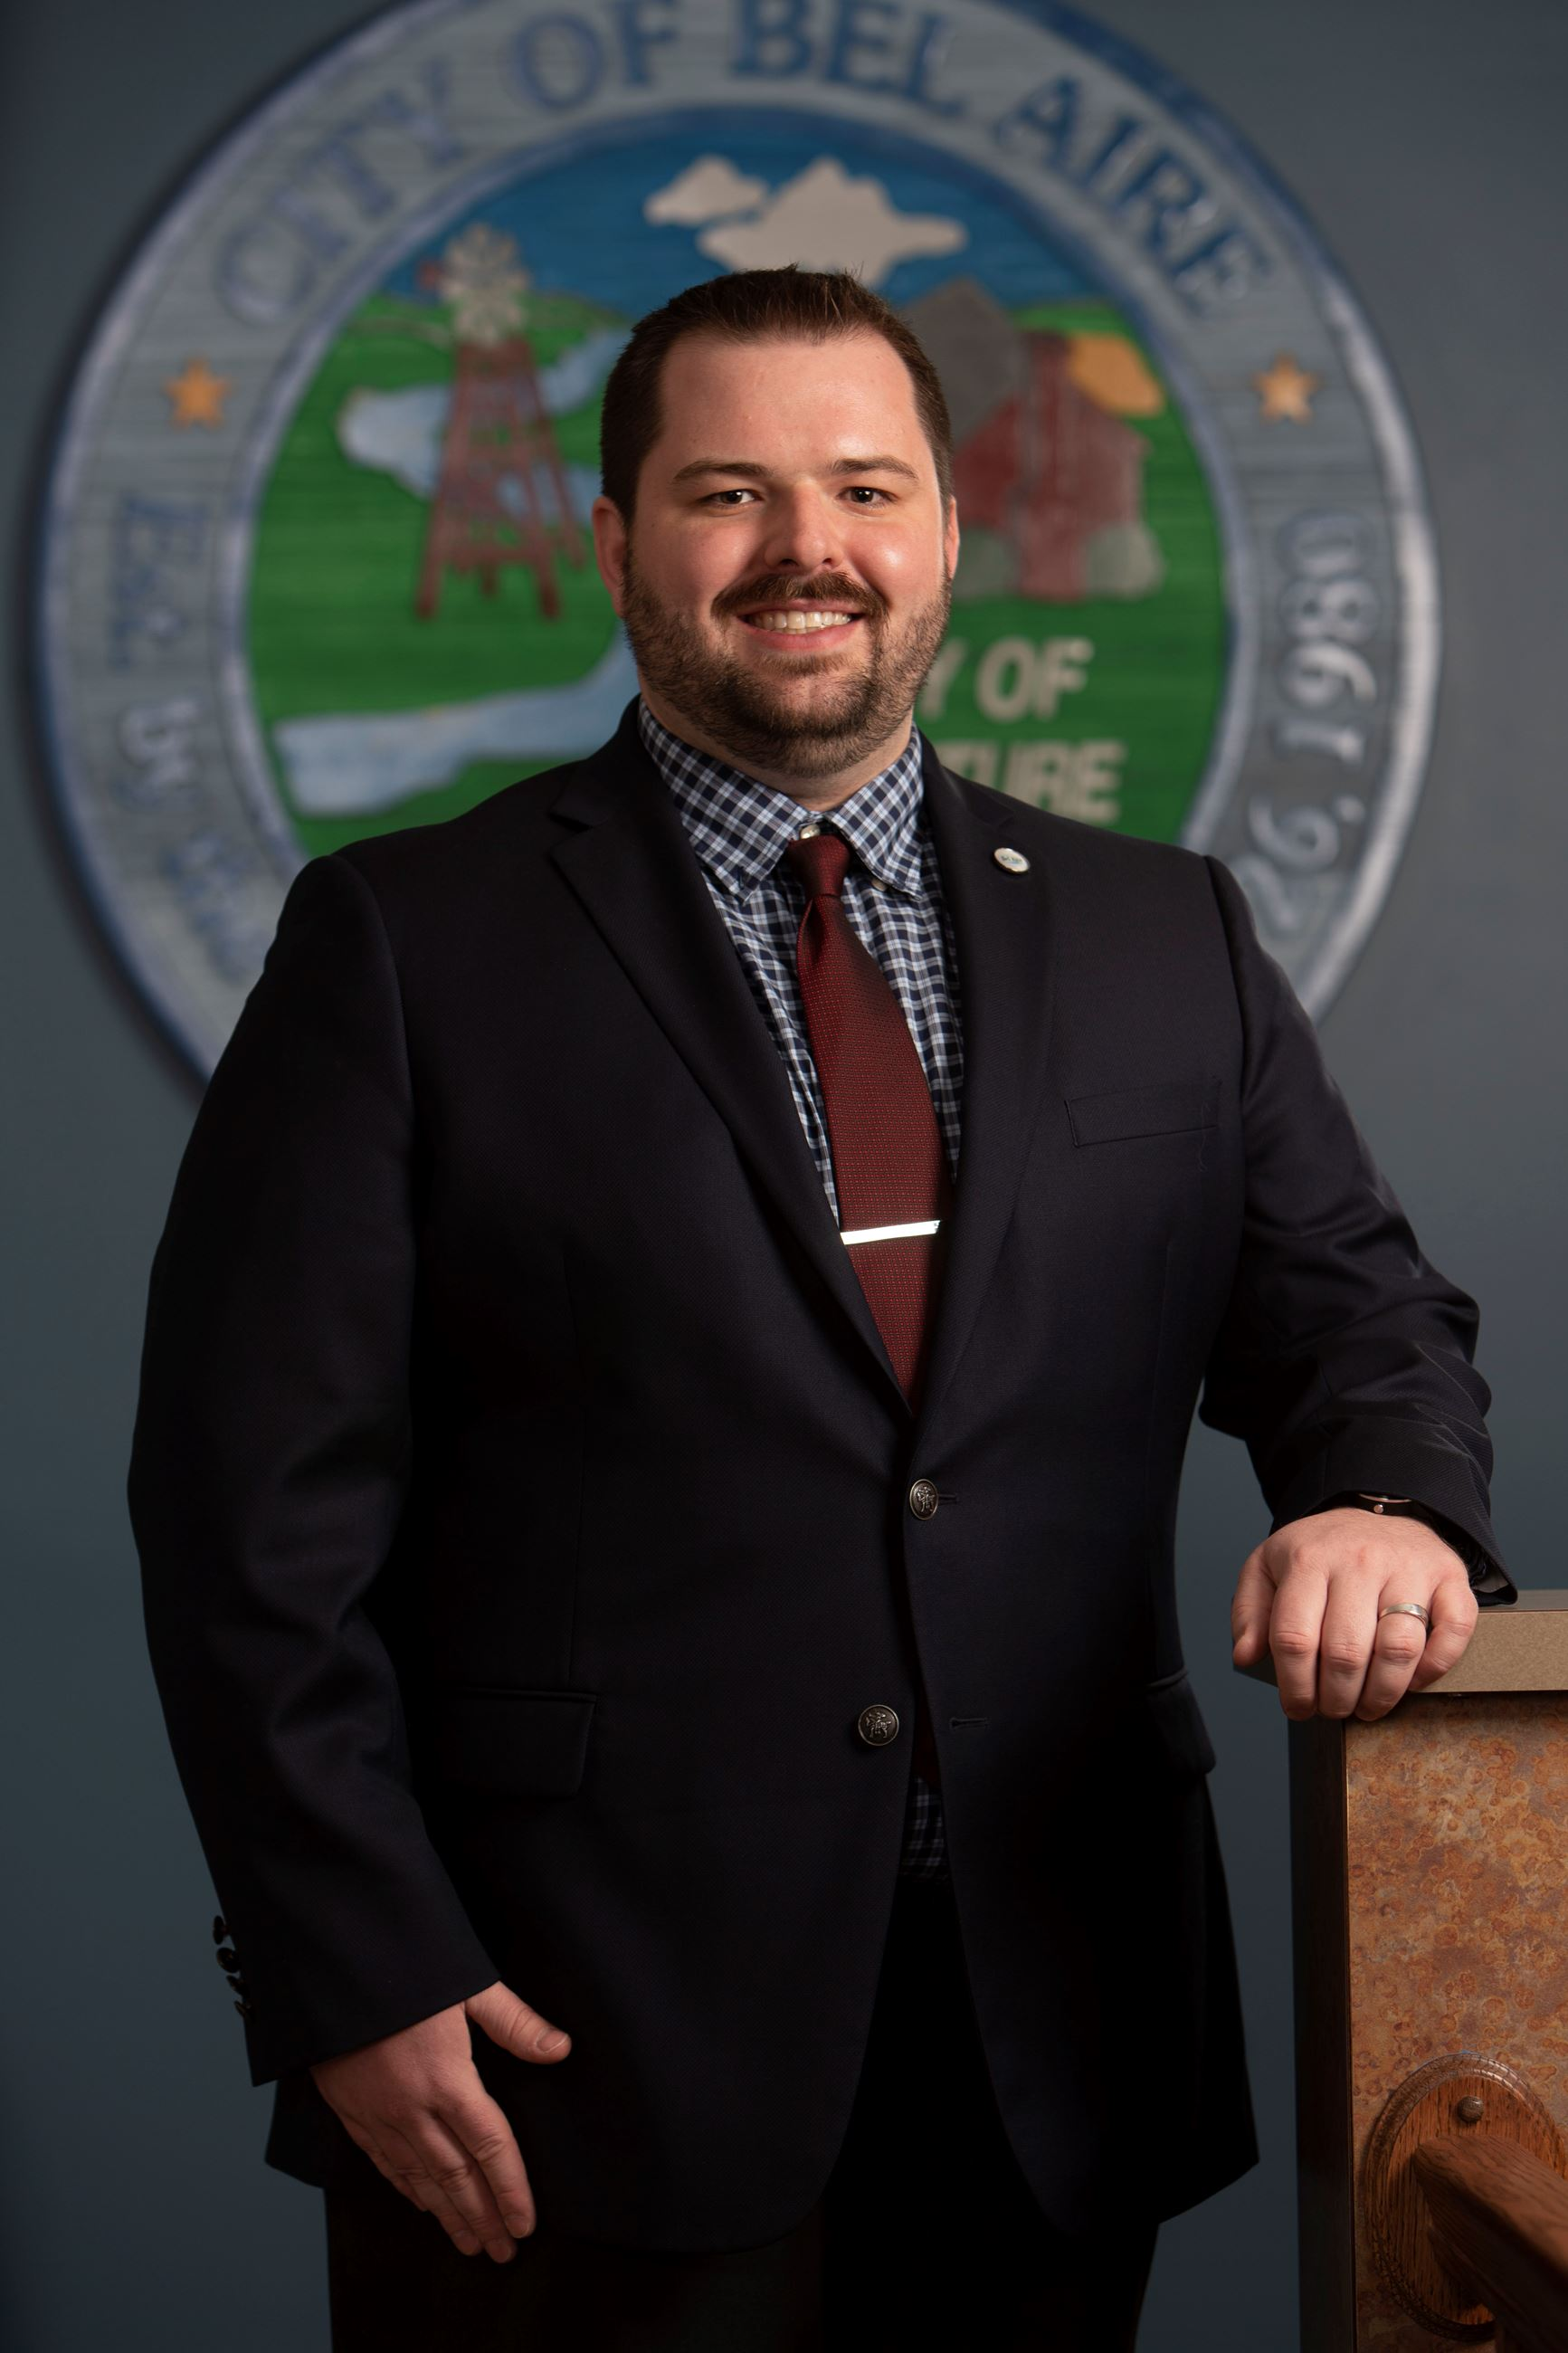 Councilman Justin Smith